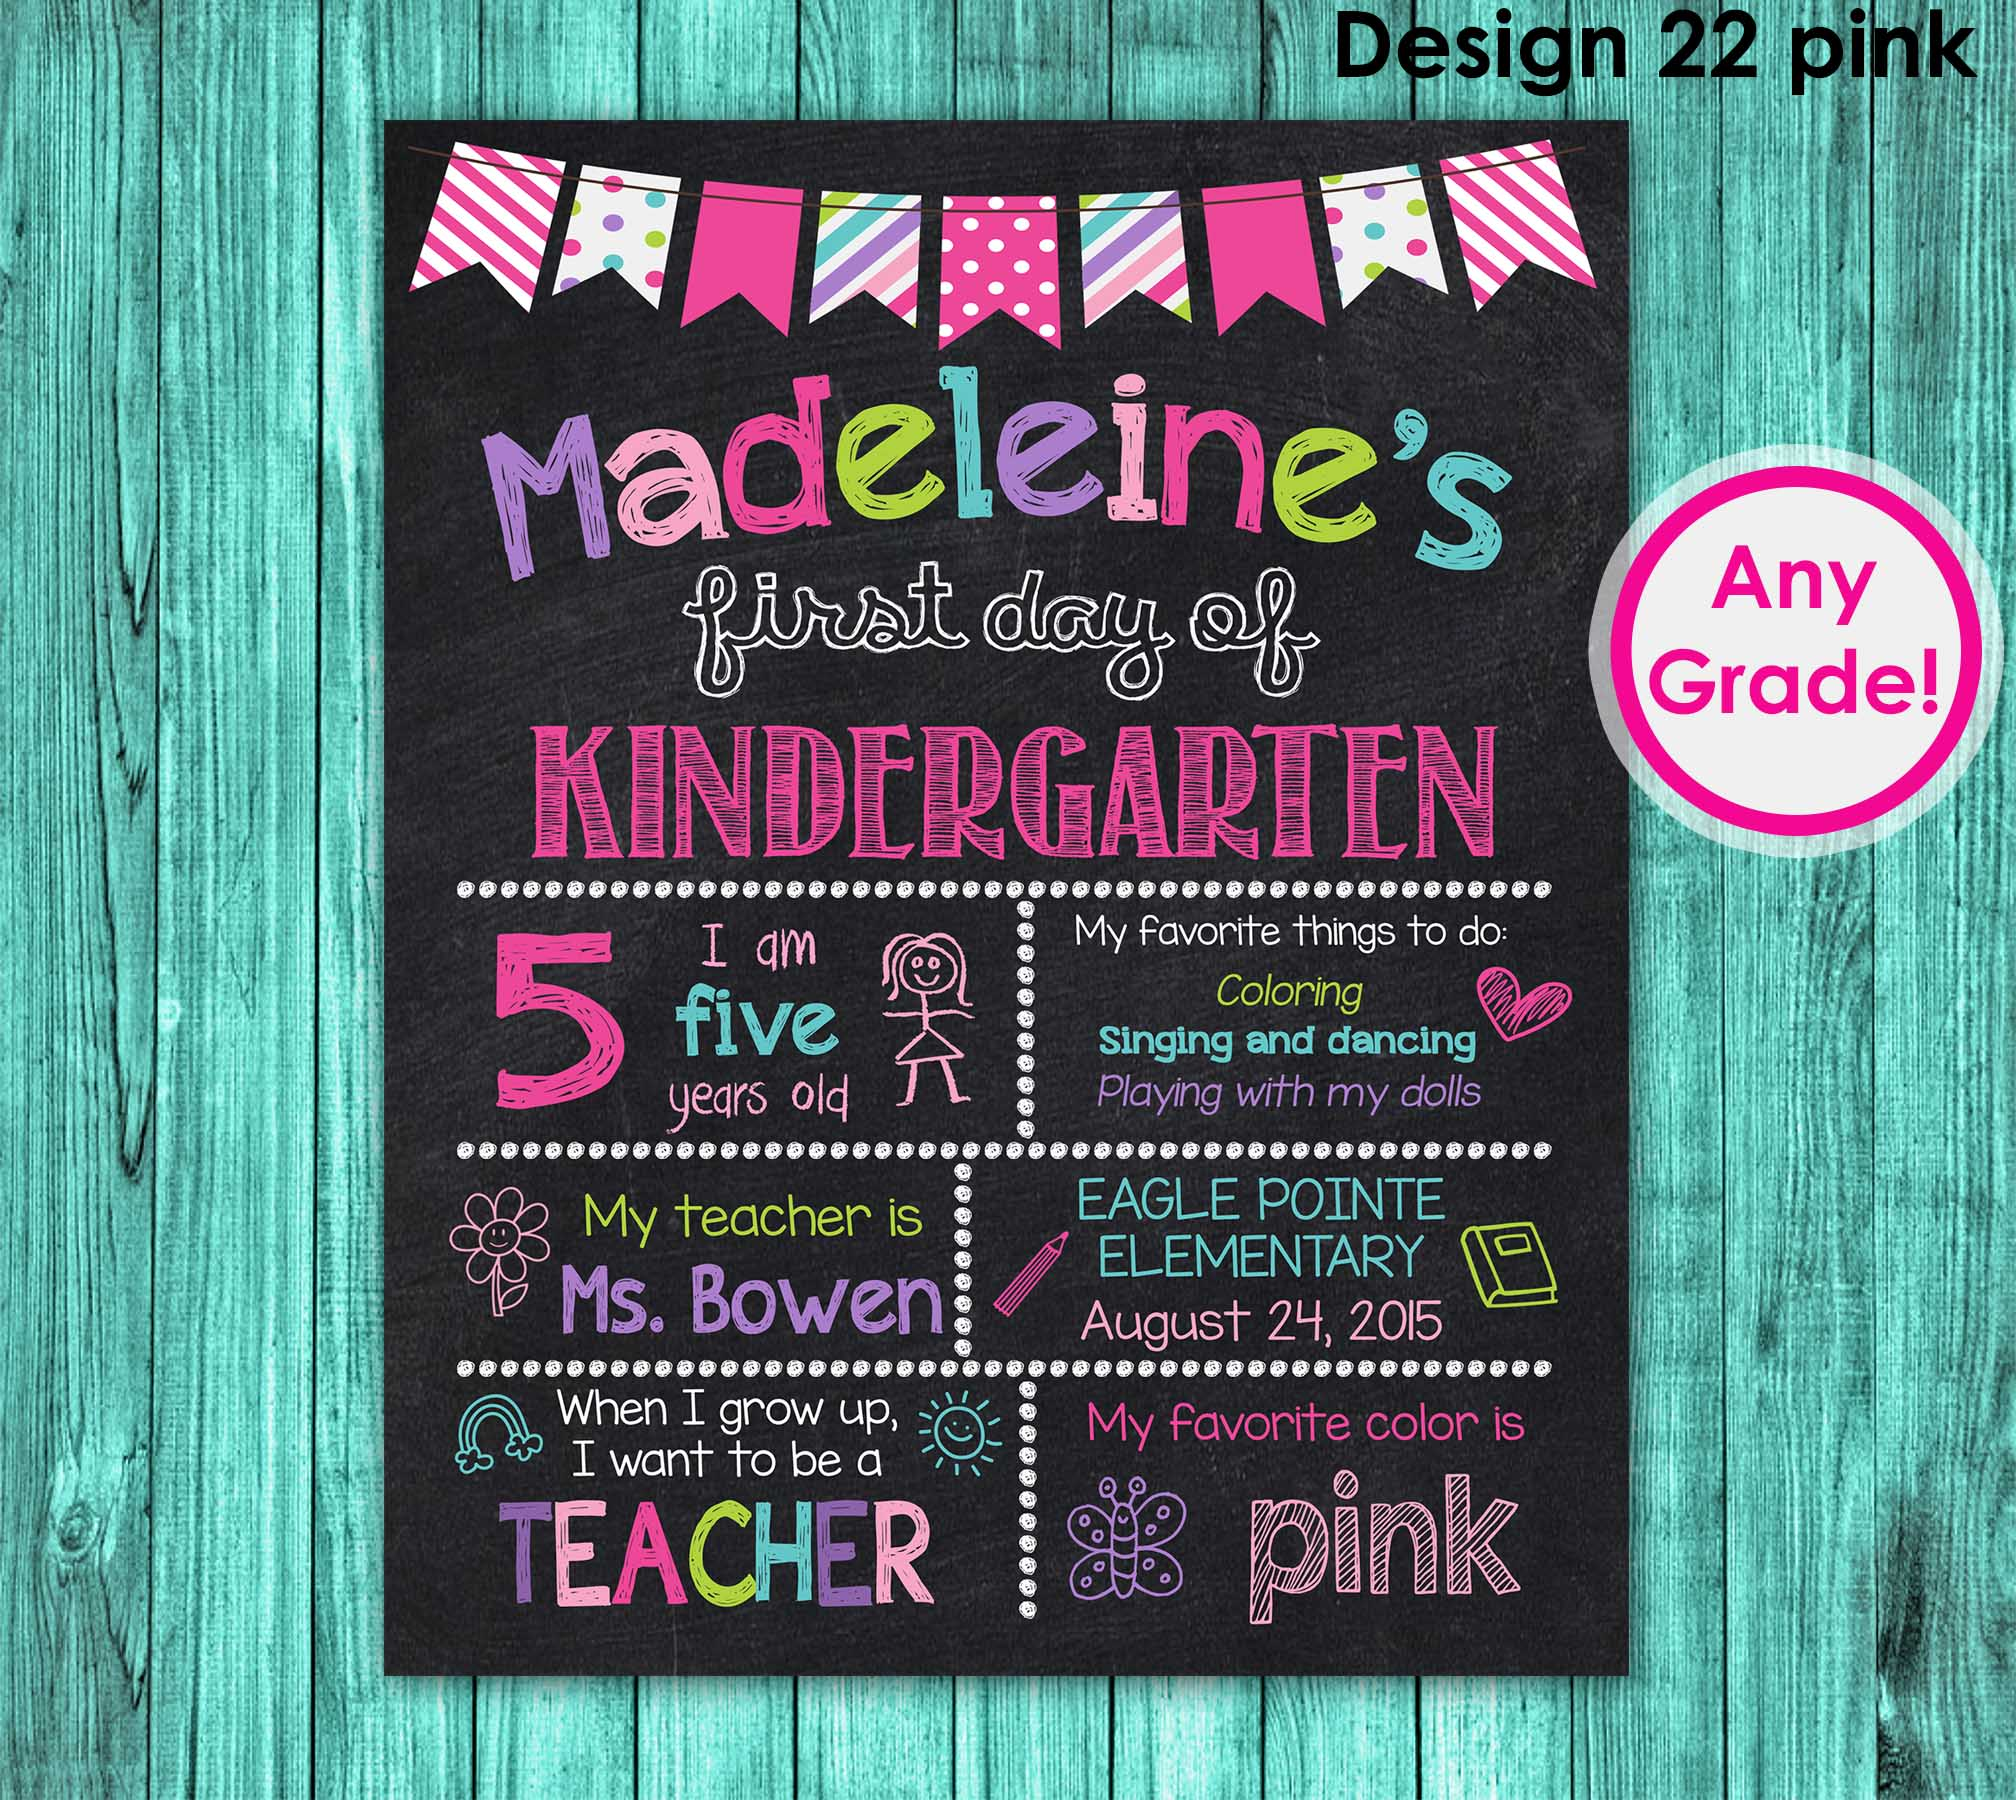 photograph relating to Printable Chalkboard Signs titled 1st Working day of Faculty Signal Chalkboard Poster Printable, Initially Working day of Kindergarten, Tailored Again in the direction of College Preschool ANY Quality